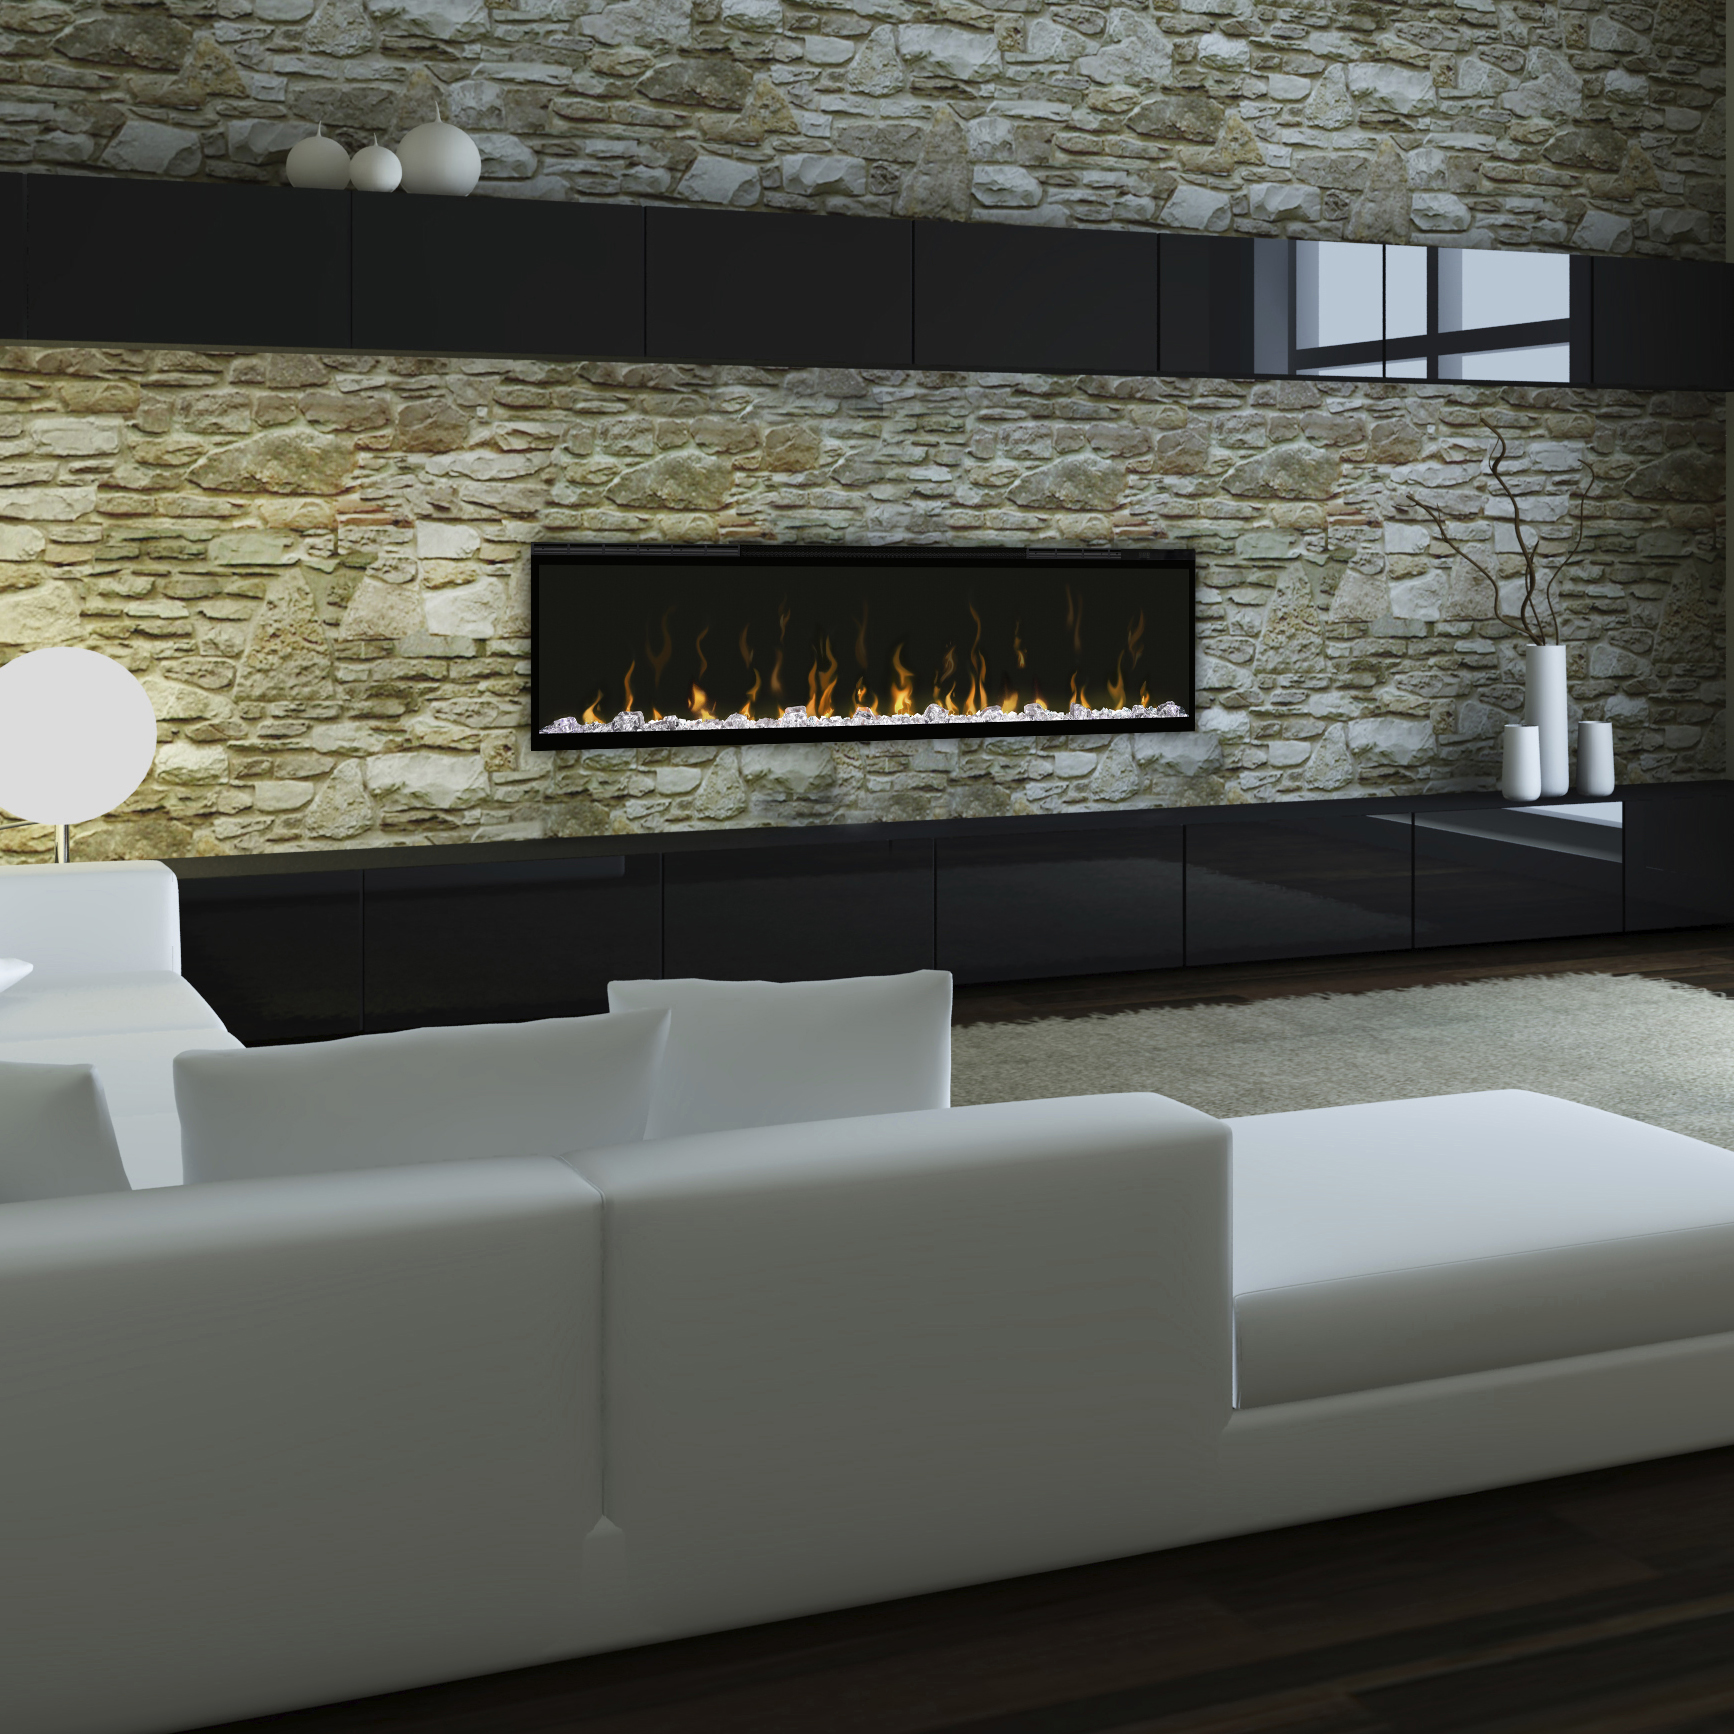 Ignite 50 Dimplex Wall mounts Fireplace in a Modern Home